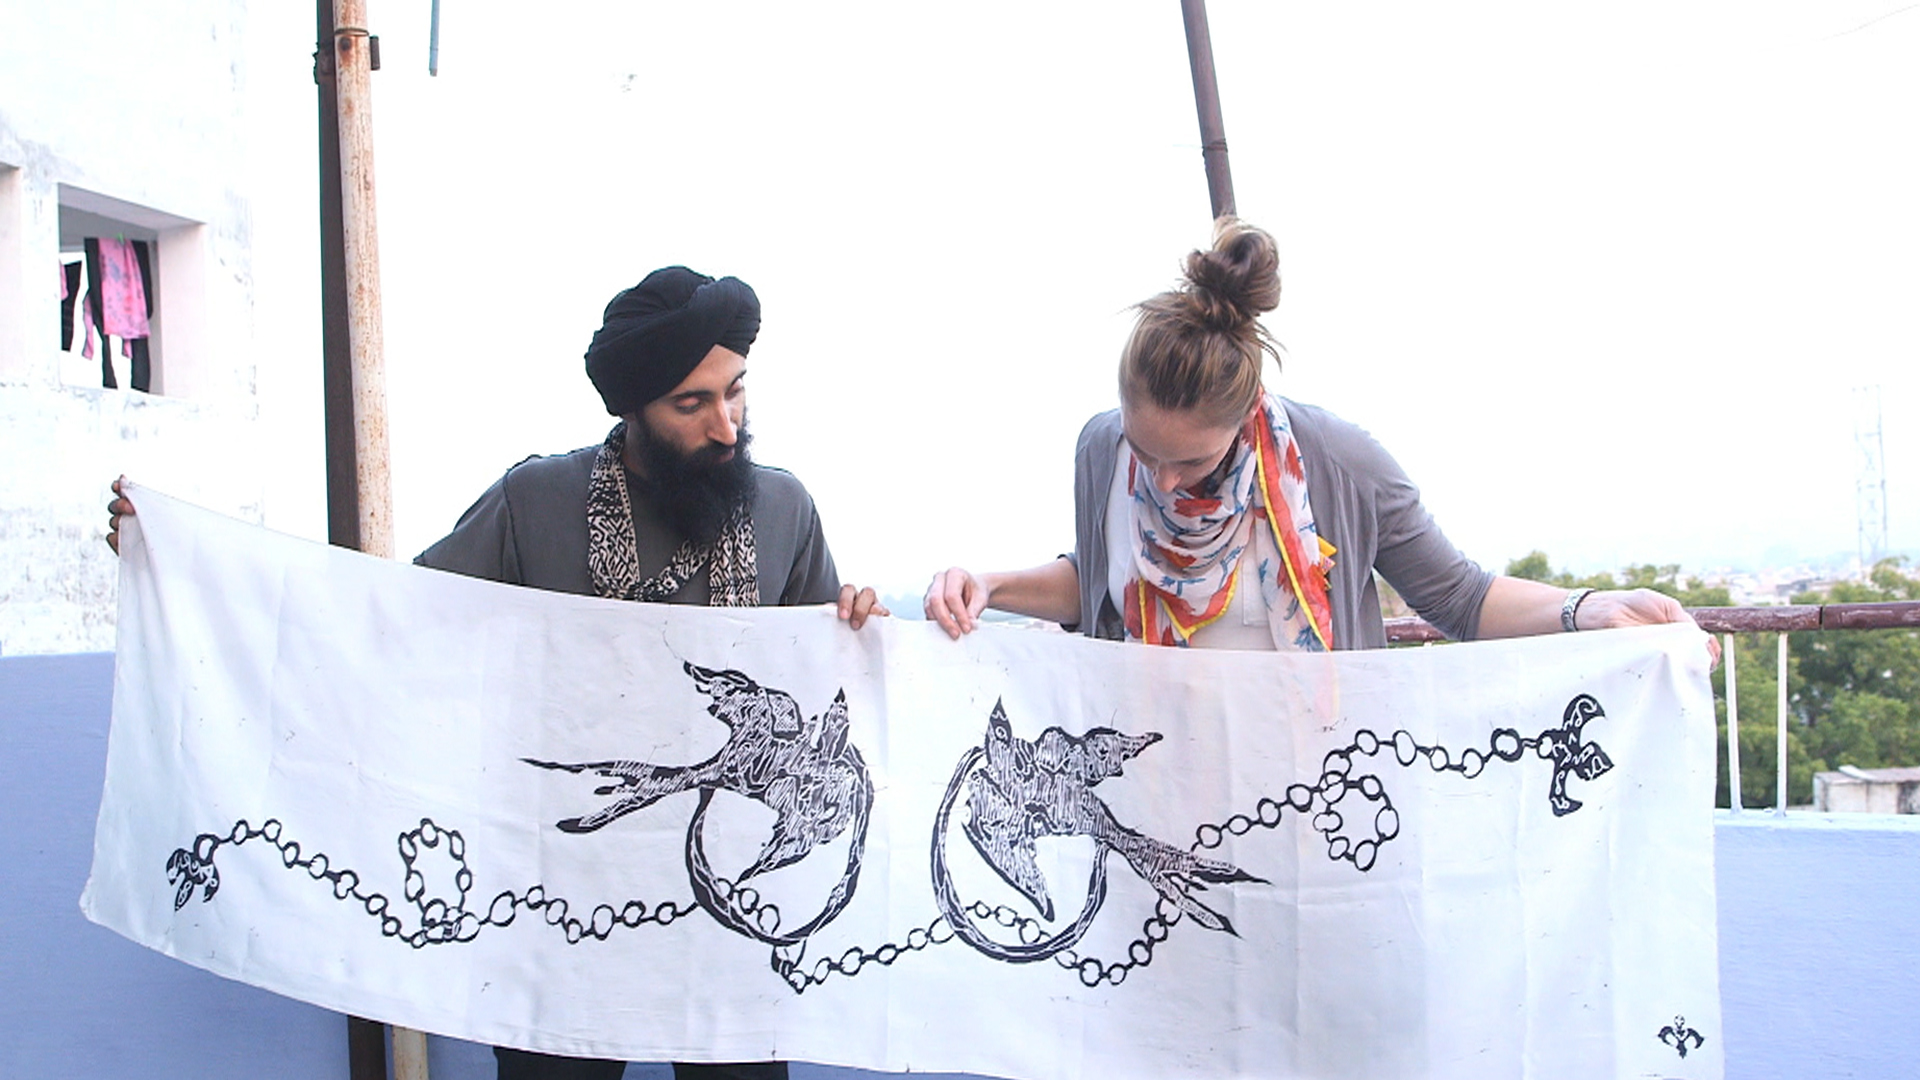 Waris ahluwalia on indian identity and that viral gap ad watch waris ahluwalia at work in india publicscrutiny Gallery